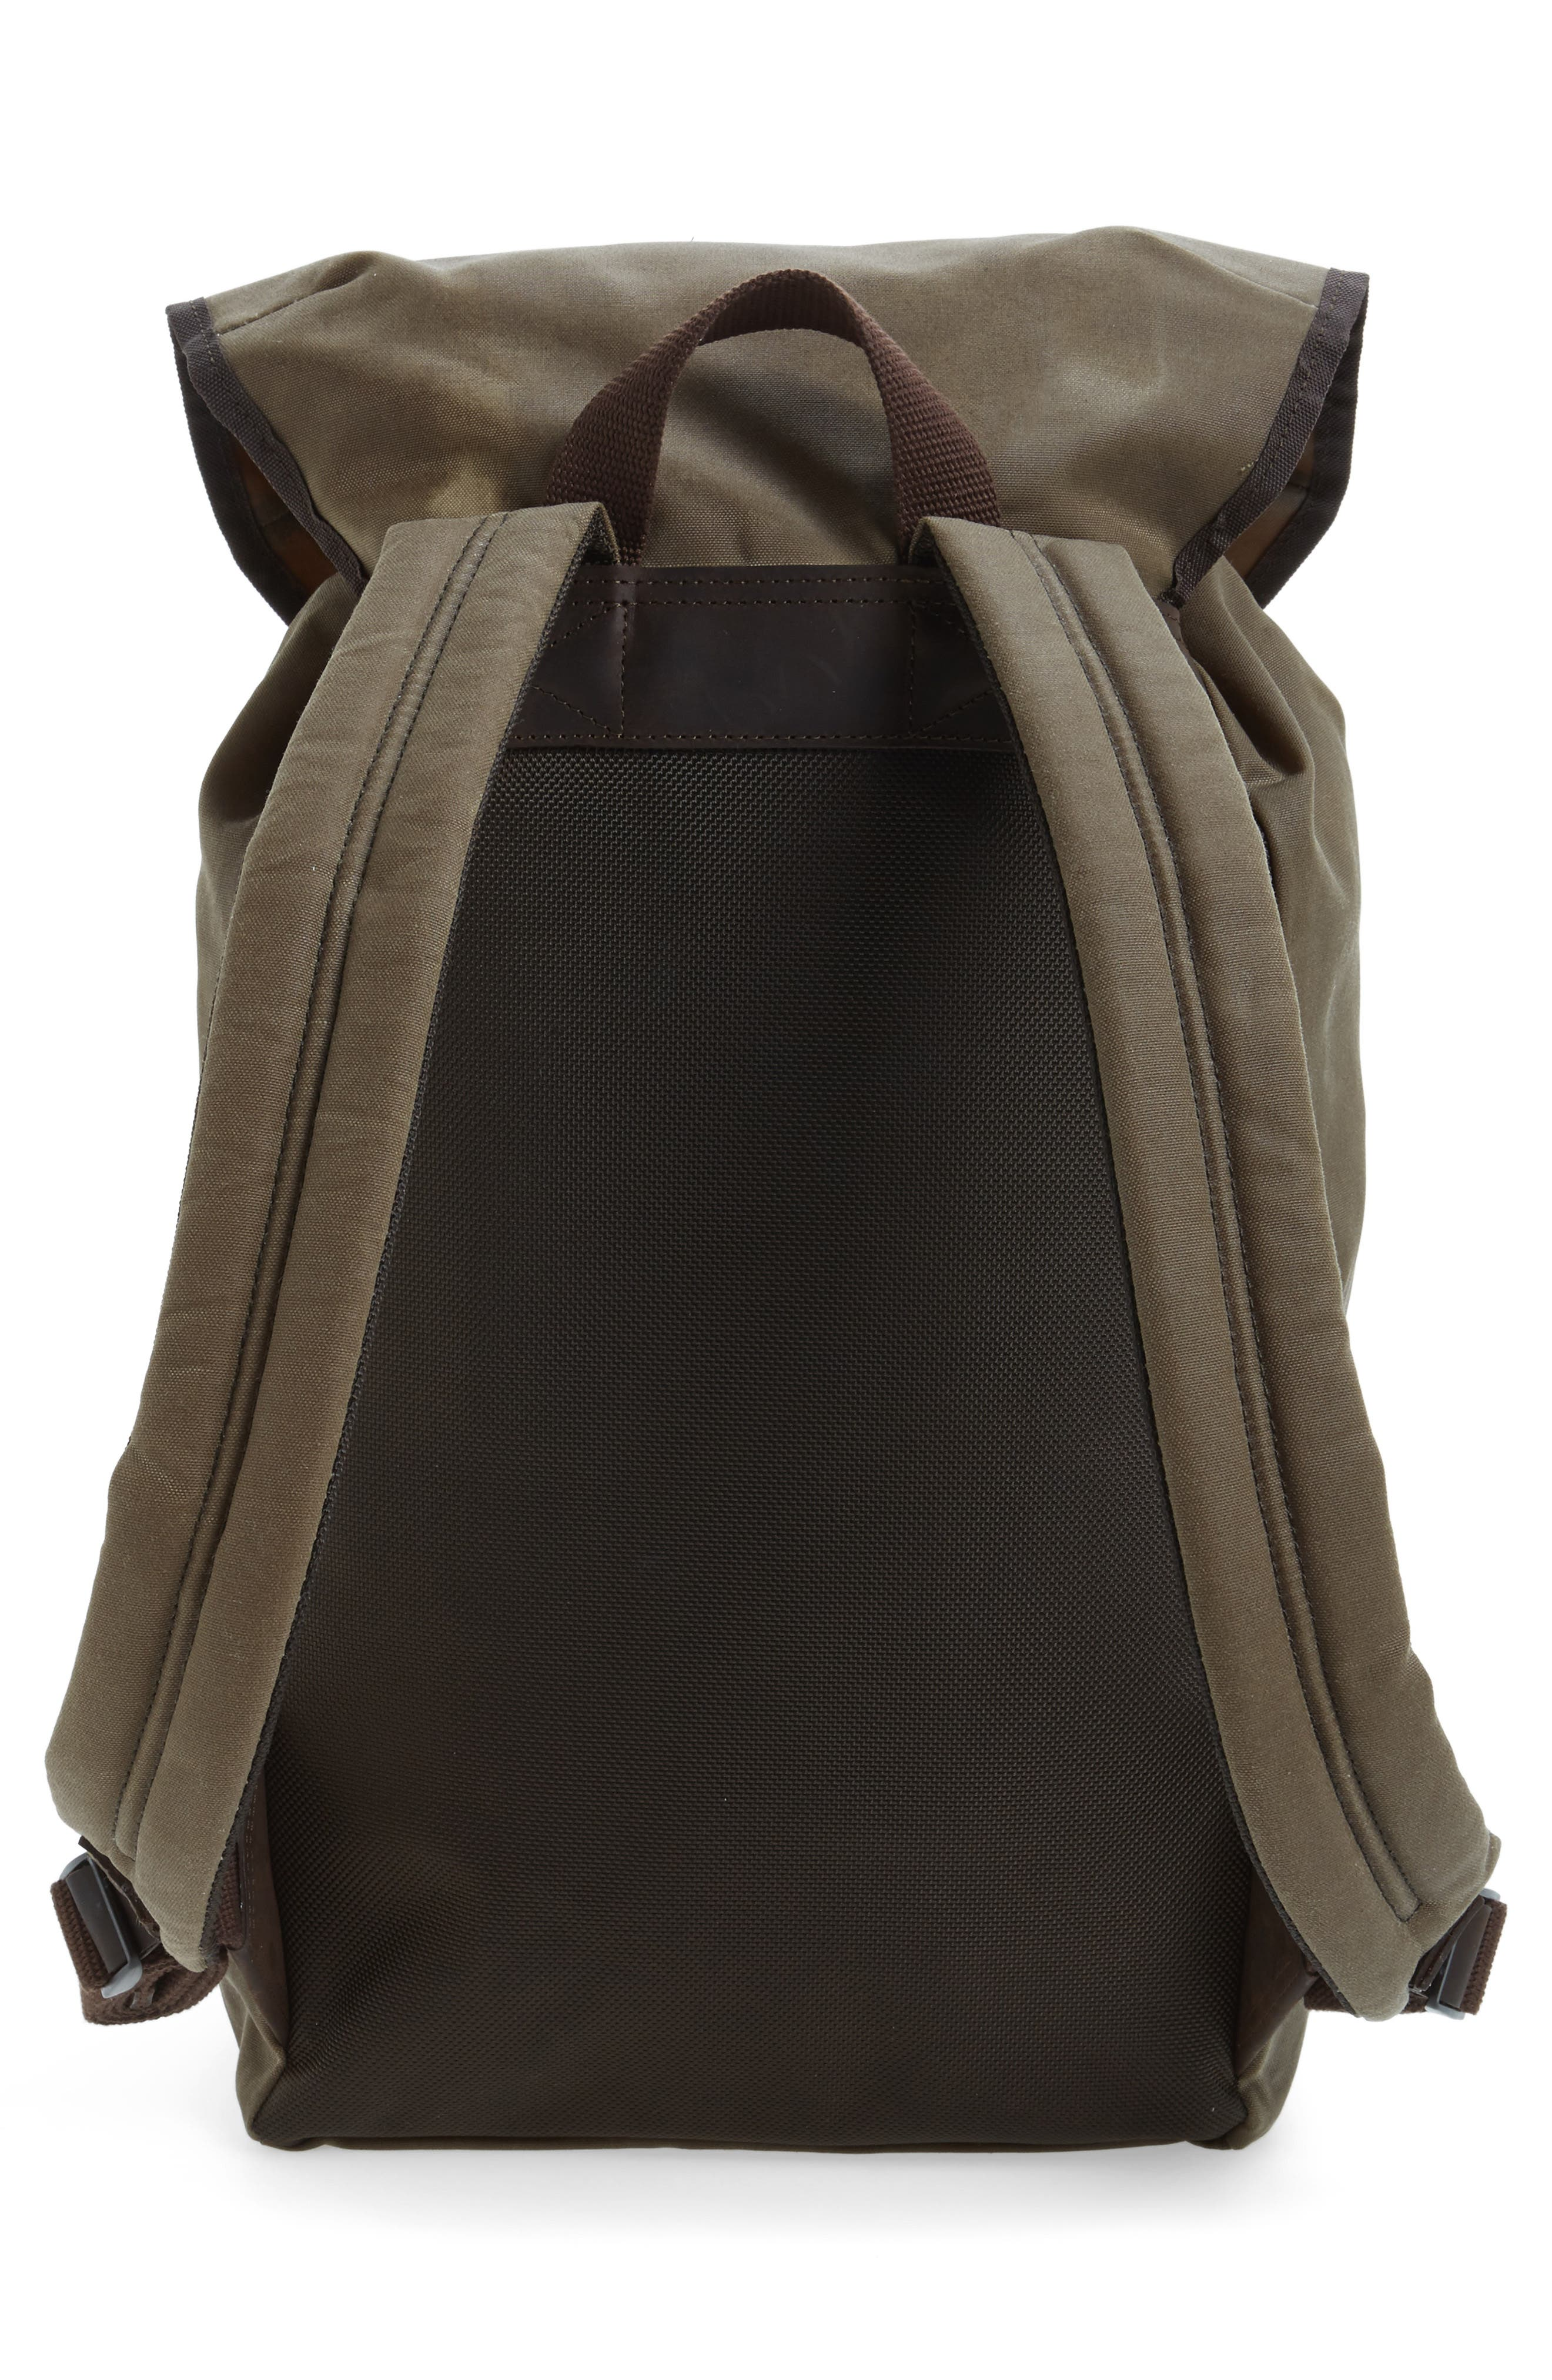 Waxed Canvas Backpack,                             Alternate thumbnail 3, color,                             220